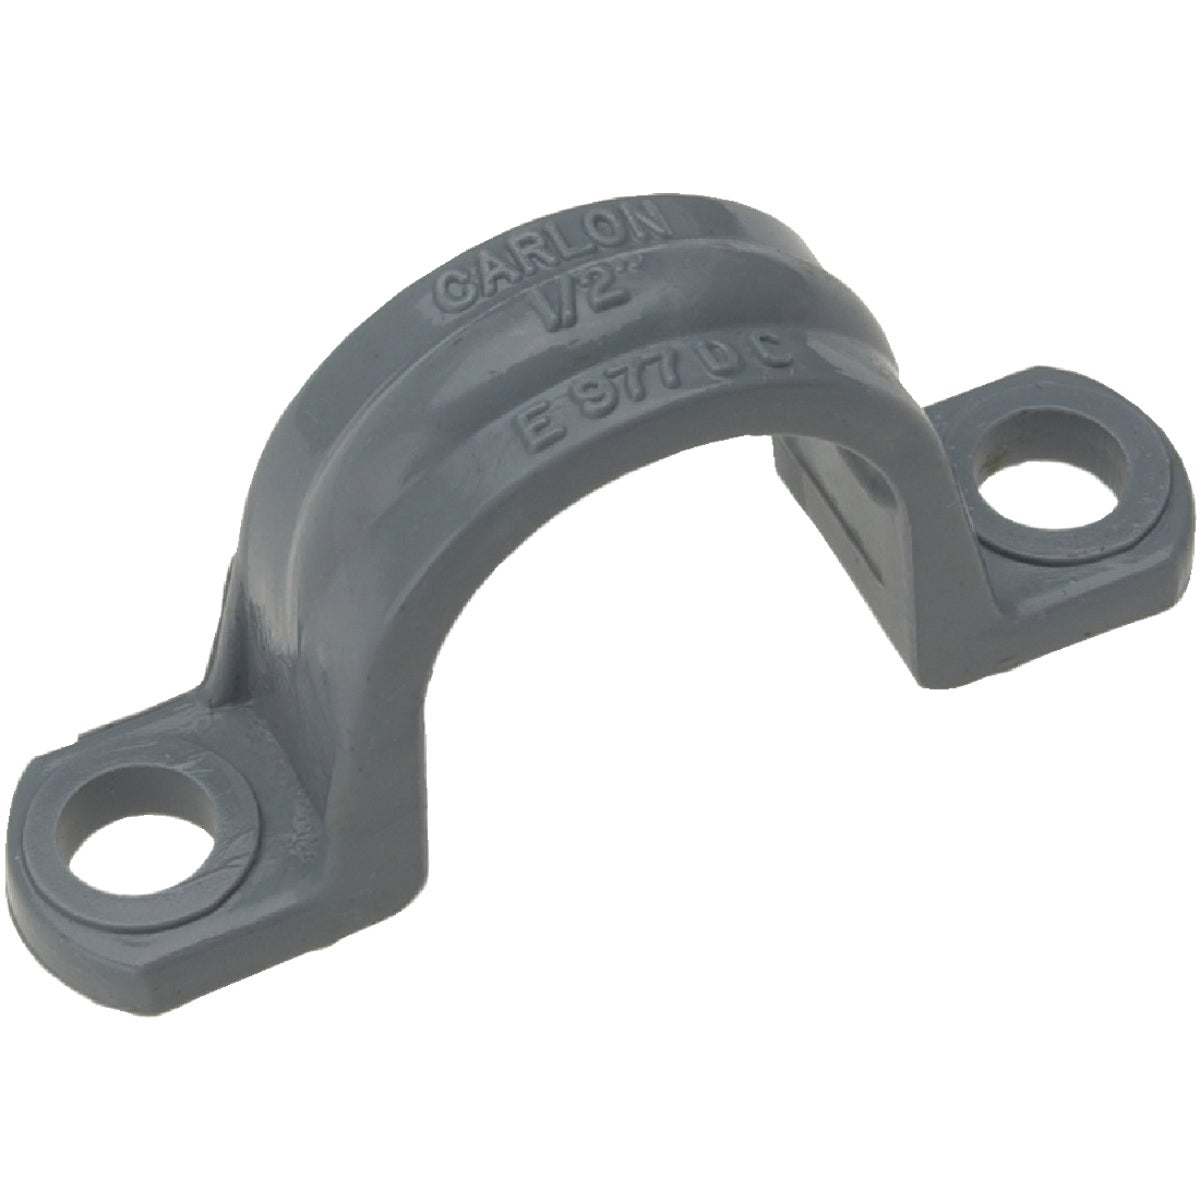 "2-1/2"" PVC STRAP - E977KCCAR by Thomas & Betts"